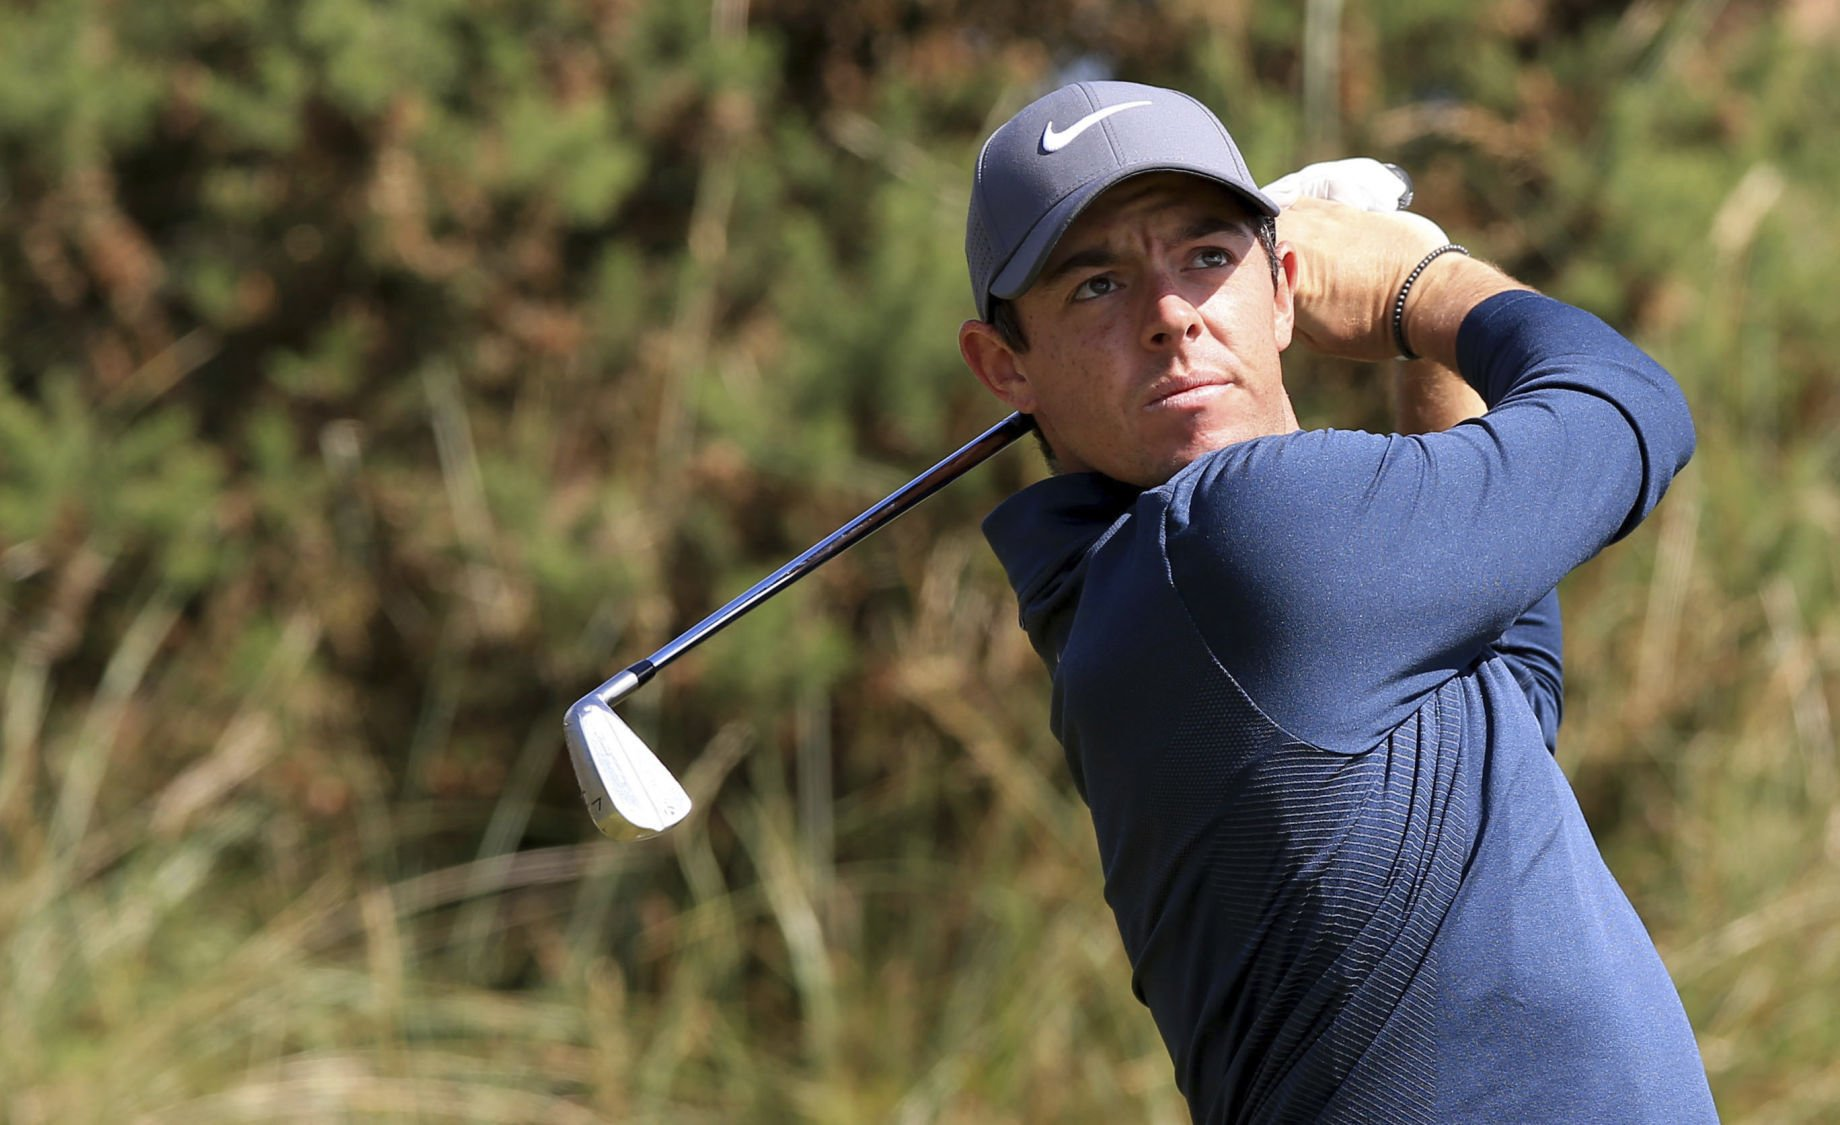 McIlroy wastes fast start, rues 'opportunity lost' at Open